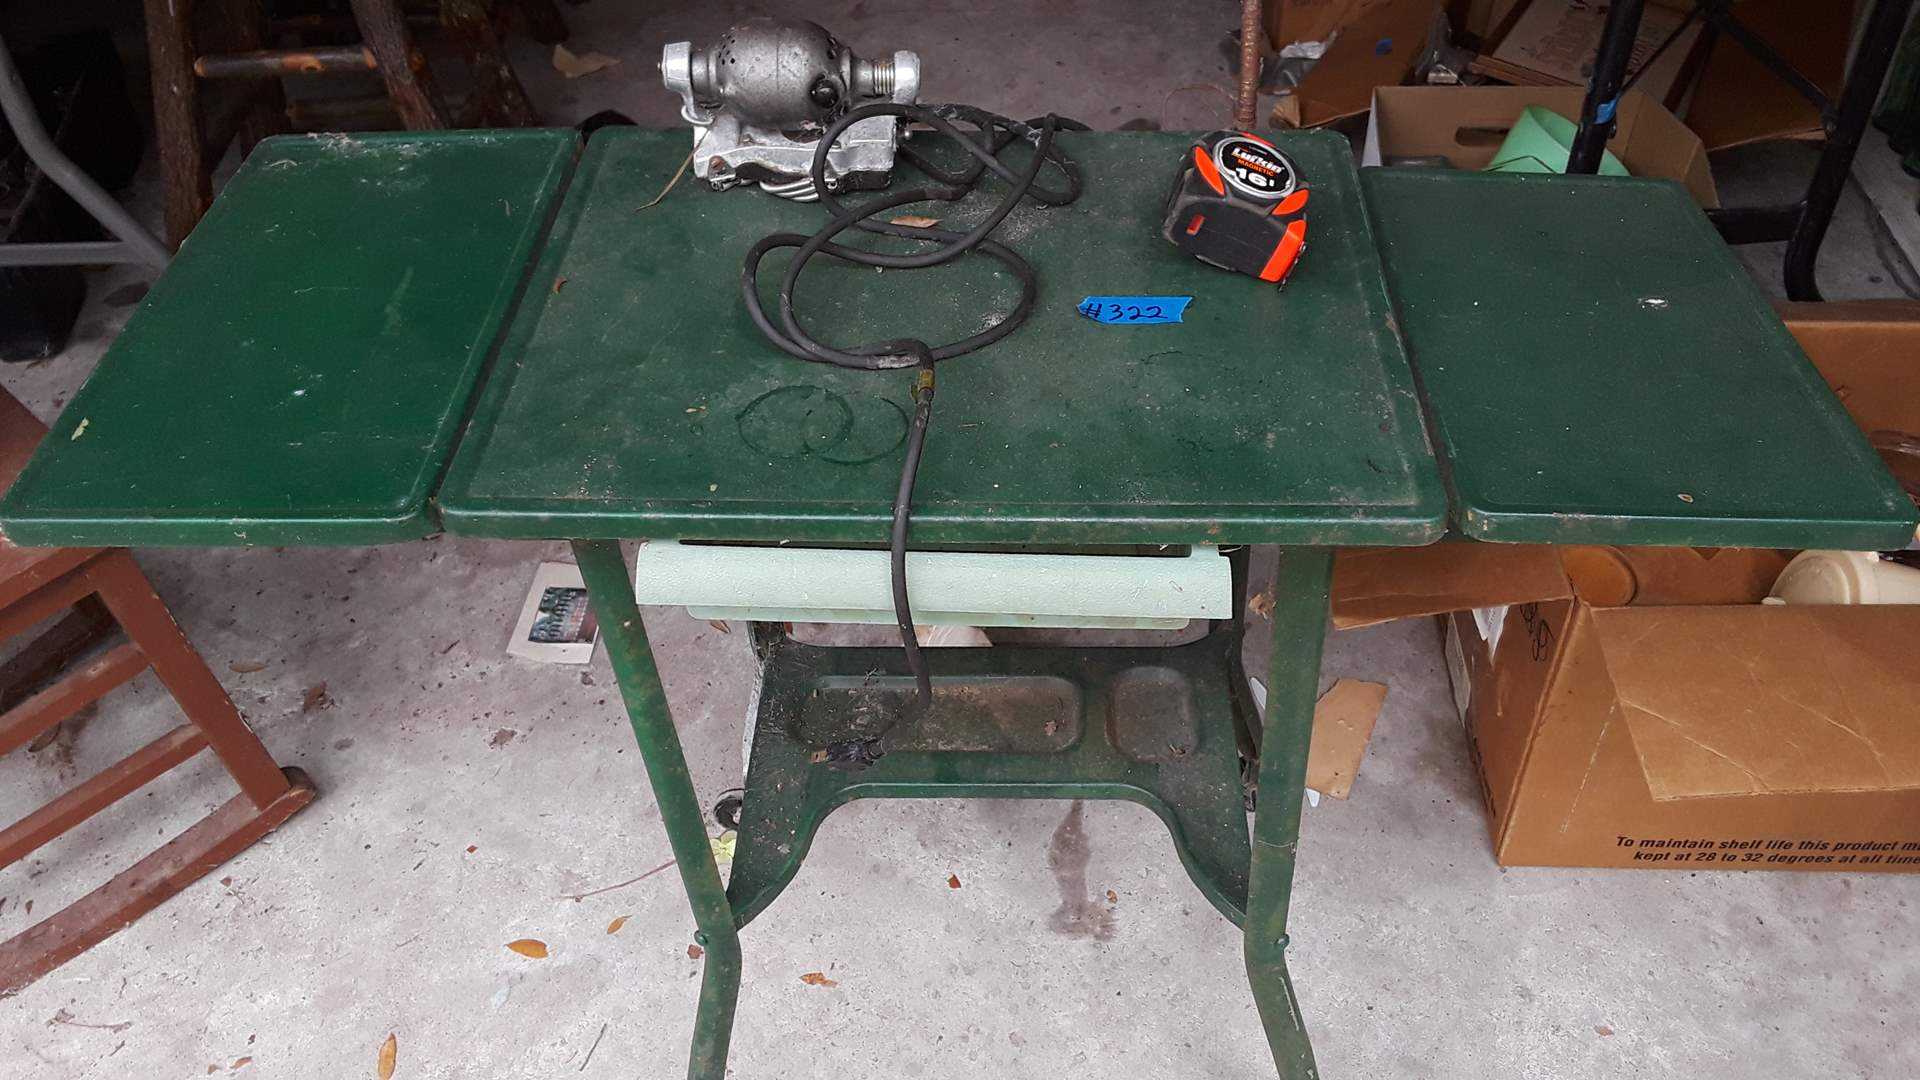 Lot # 322 ANTIQUE METAL WORK TABLE WITH DROP LEAVES, ANTIQUE OSTER MASSAGER